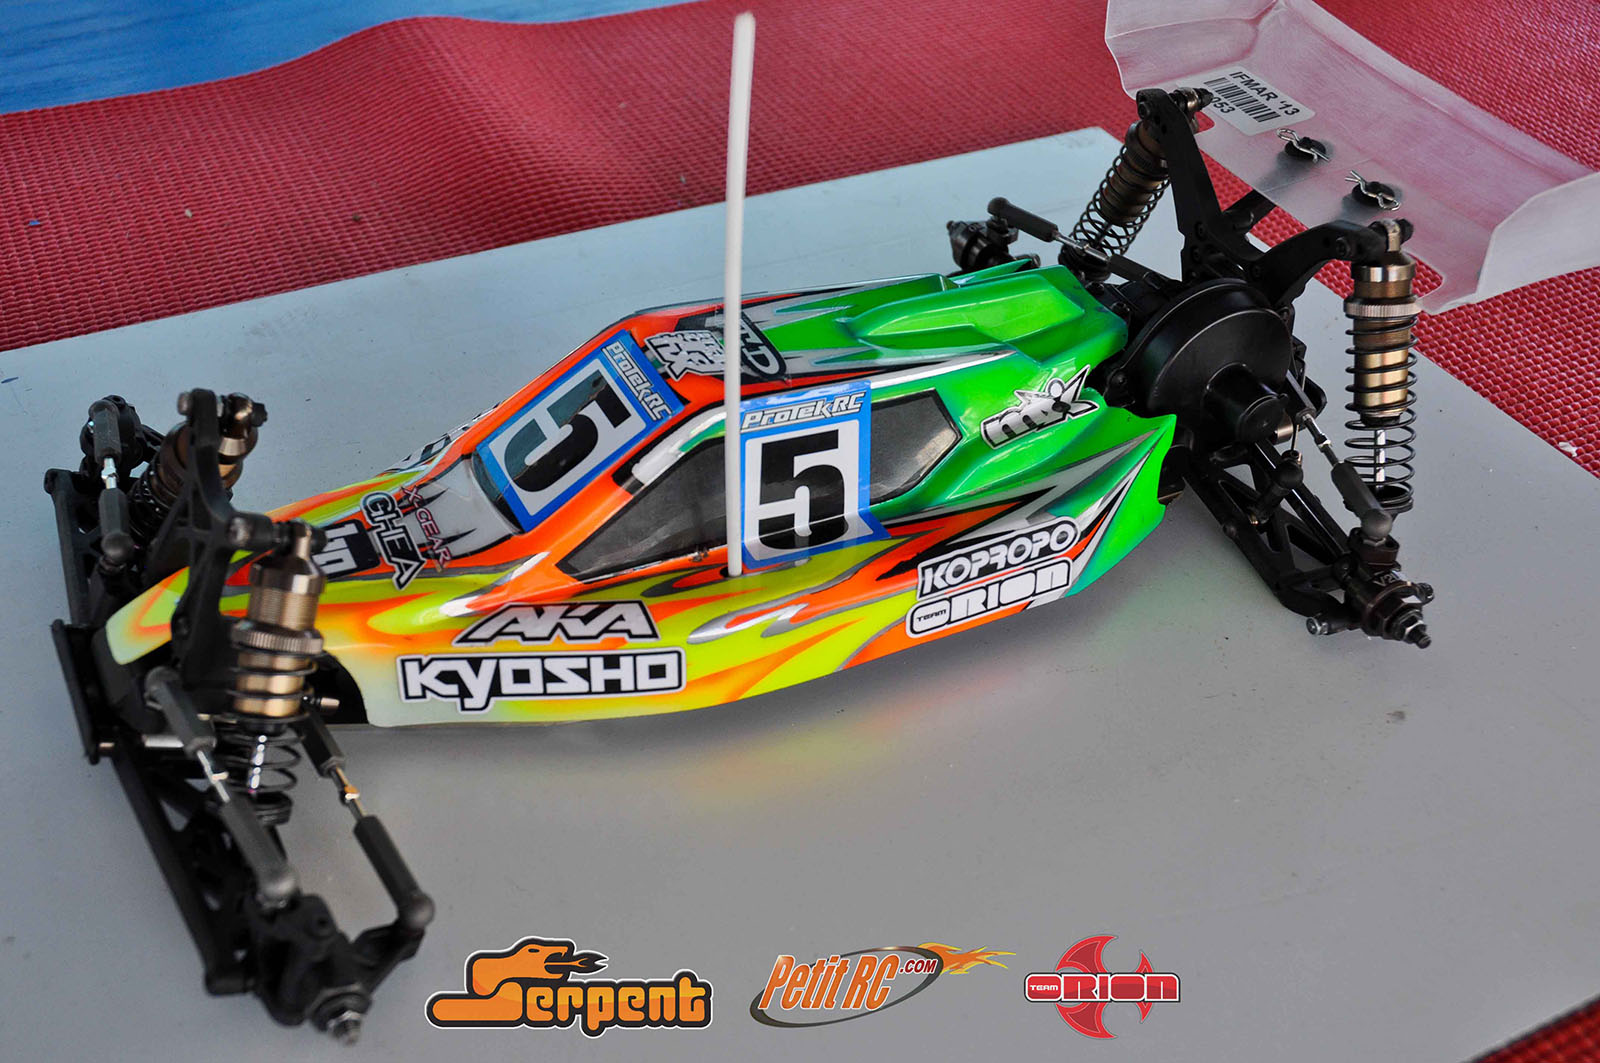 www rc car with Rb6 Davidronnefalk Chico2013092225 on Volim Te further A800 ViljamiKutvonen Hvrotovice2015121113 besides Two Sided aOY3J4rNZtBaGCadE7 R9RkbOSrEVCyh3UgjxVWEoDo also 2016 Lexus Lc Coupe To Malaysia 1 also 380.